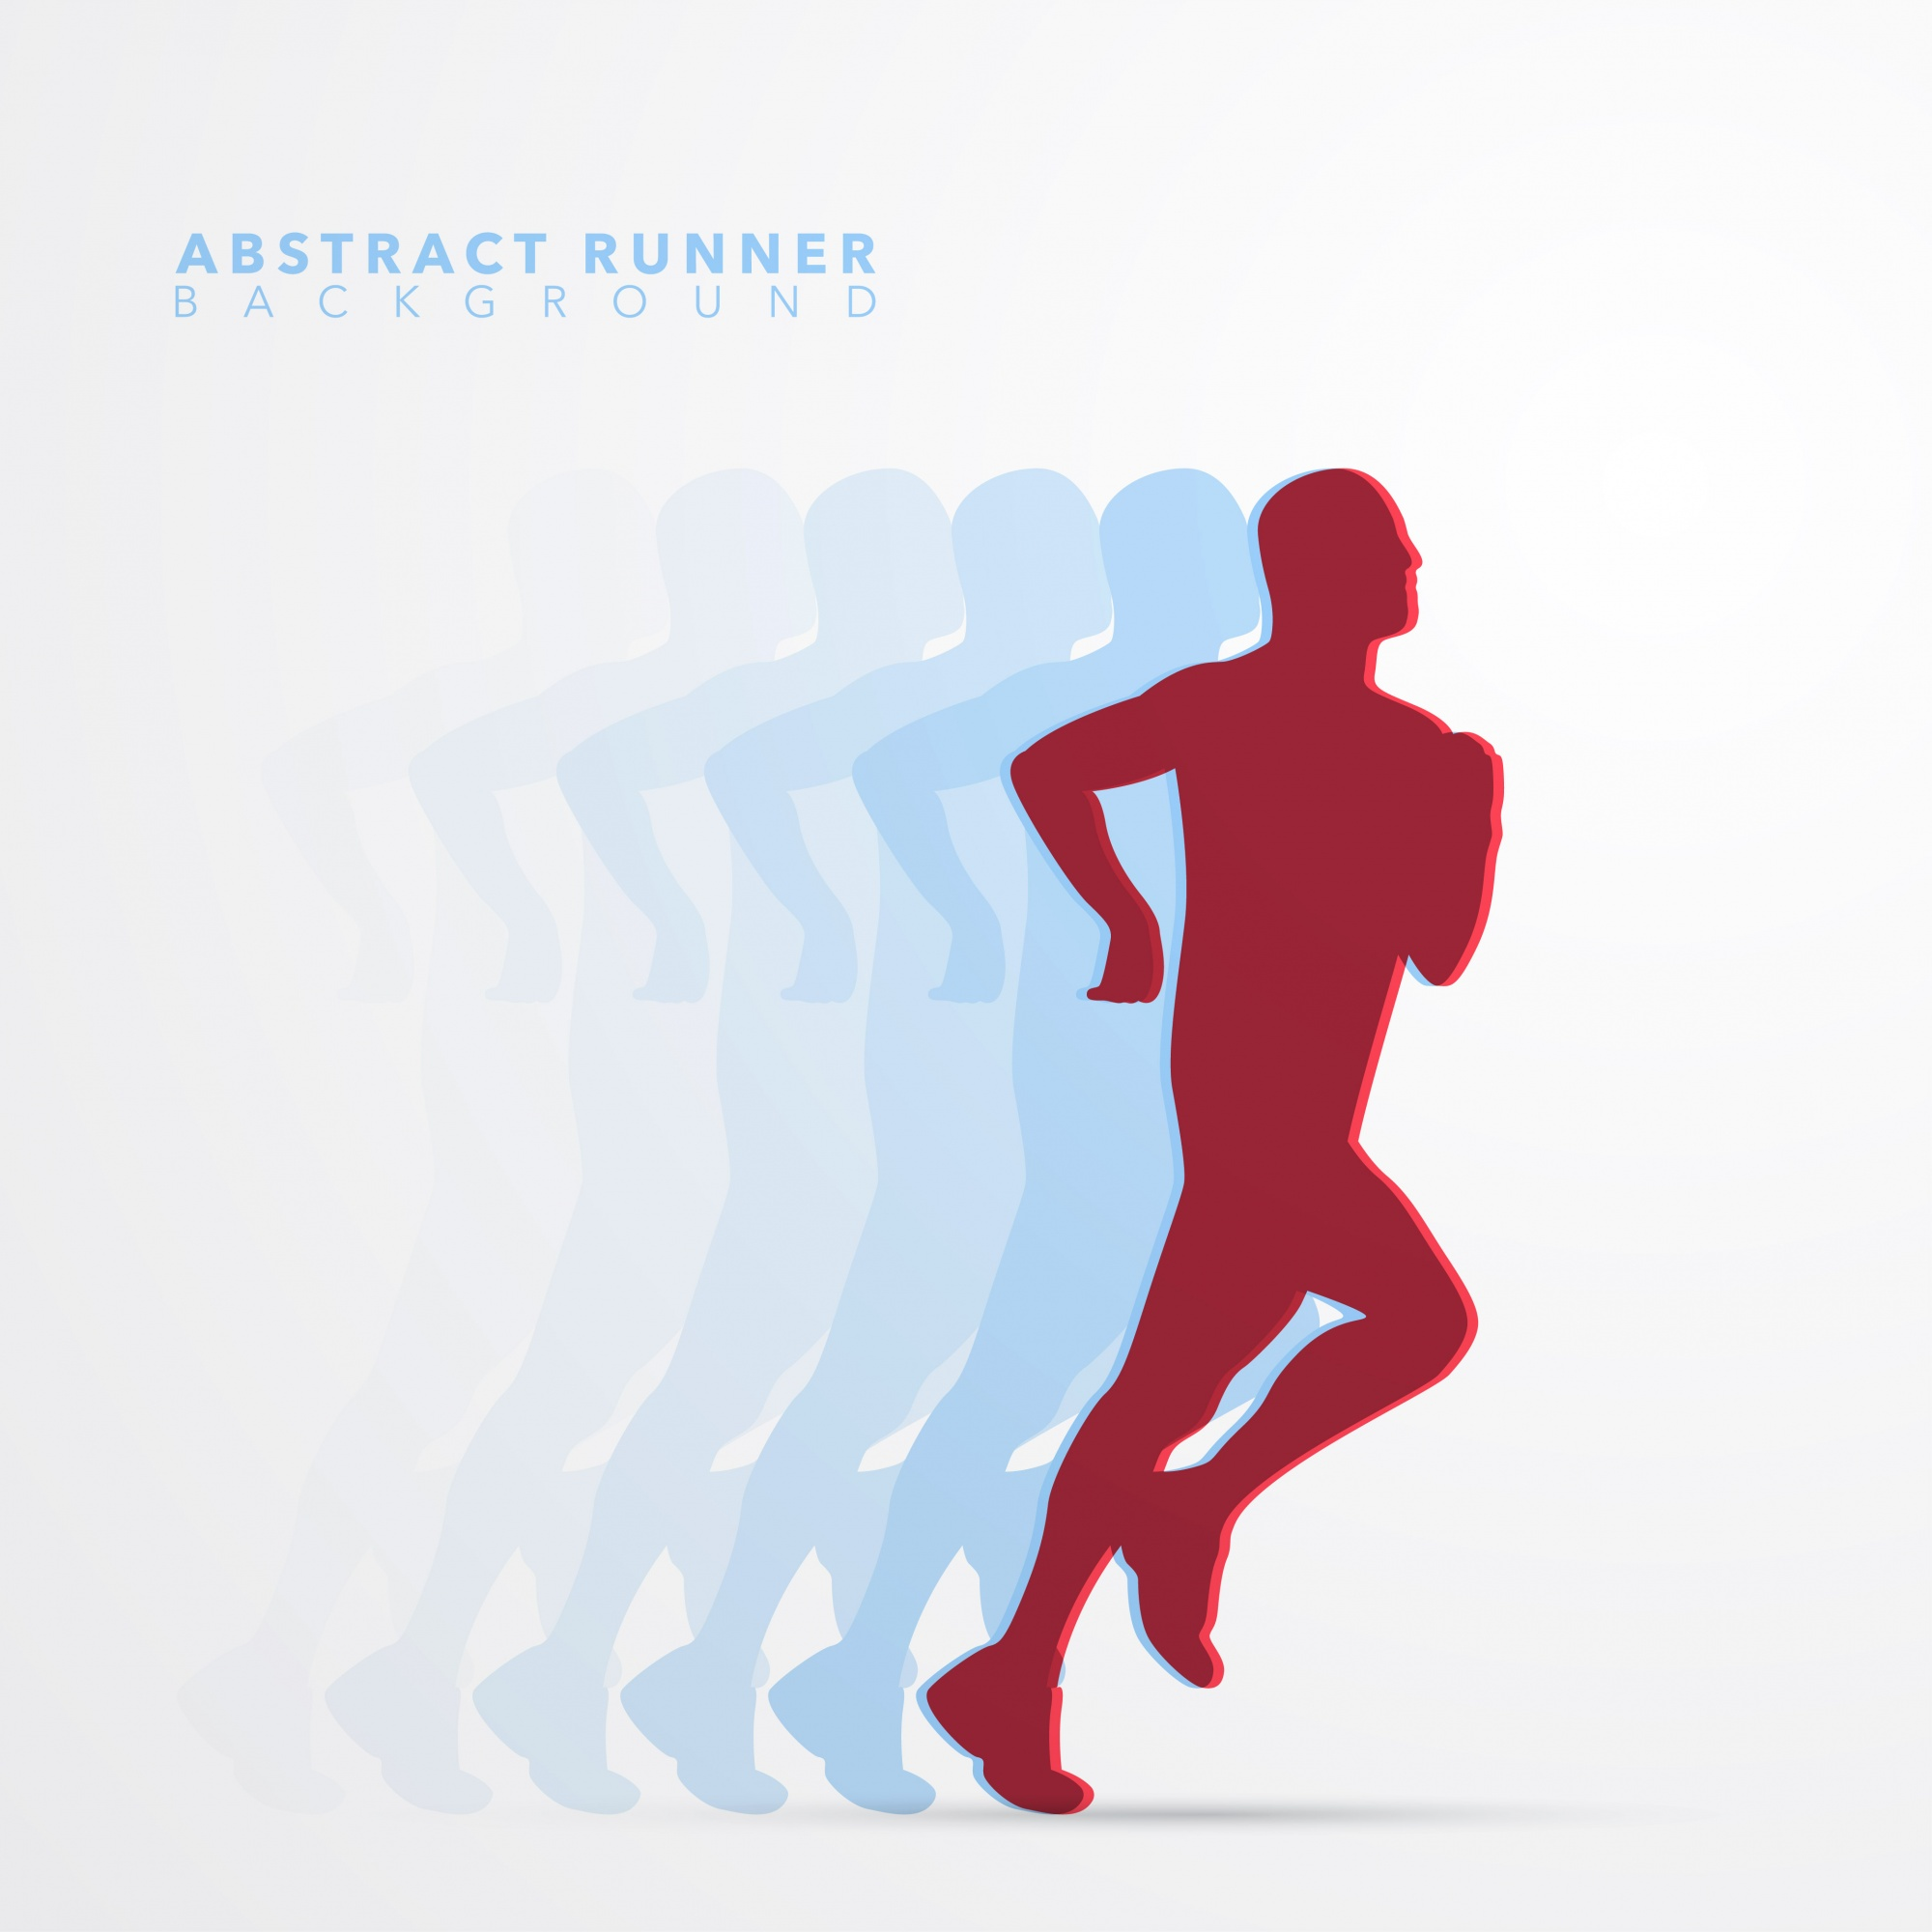 Runner Abstract Silhouette